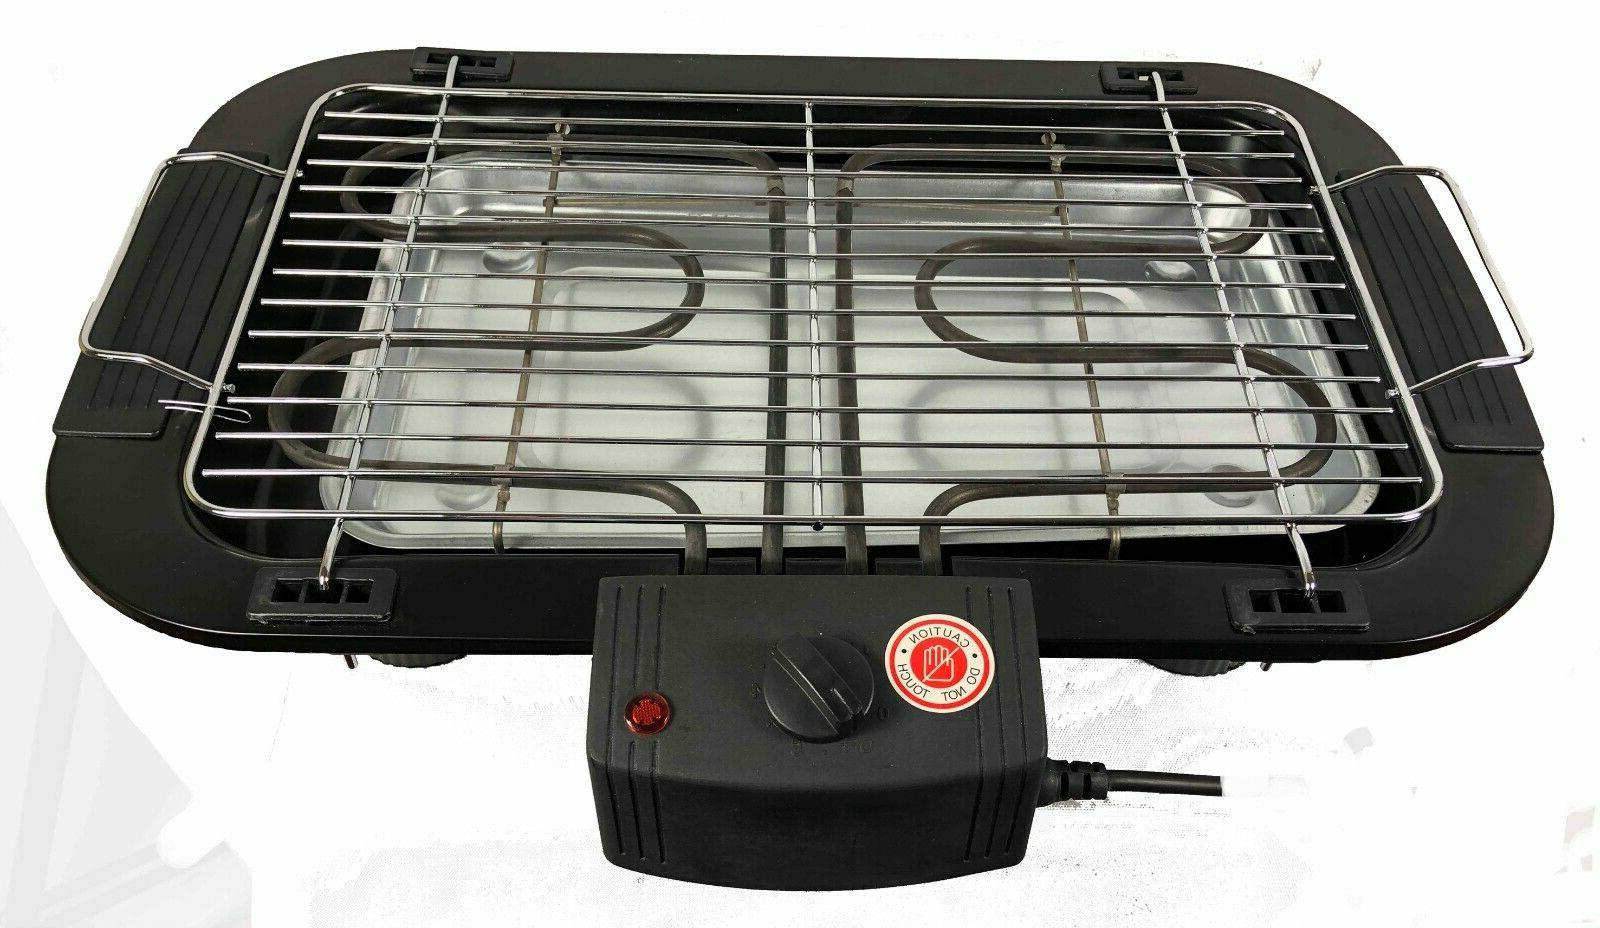 Indoor/Outdoor Portable Electric Barbecue Grill BBQ